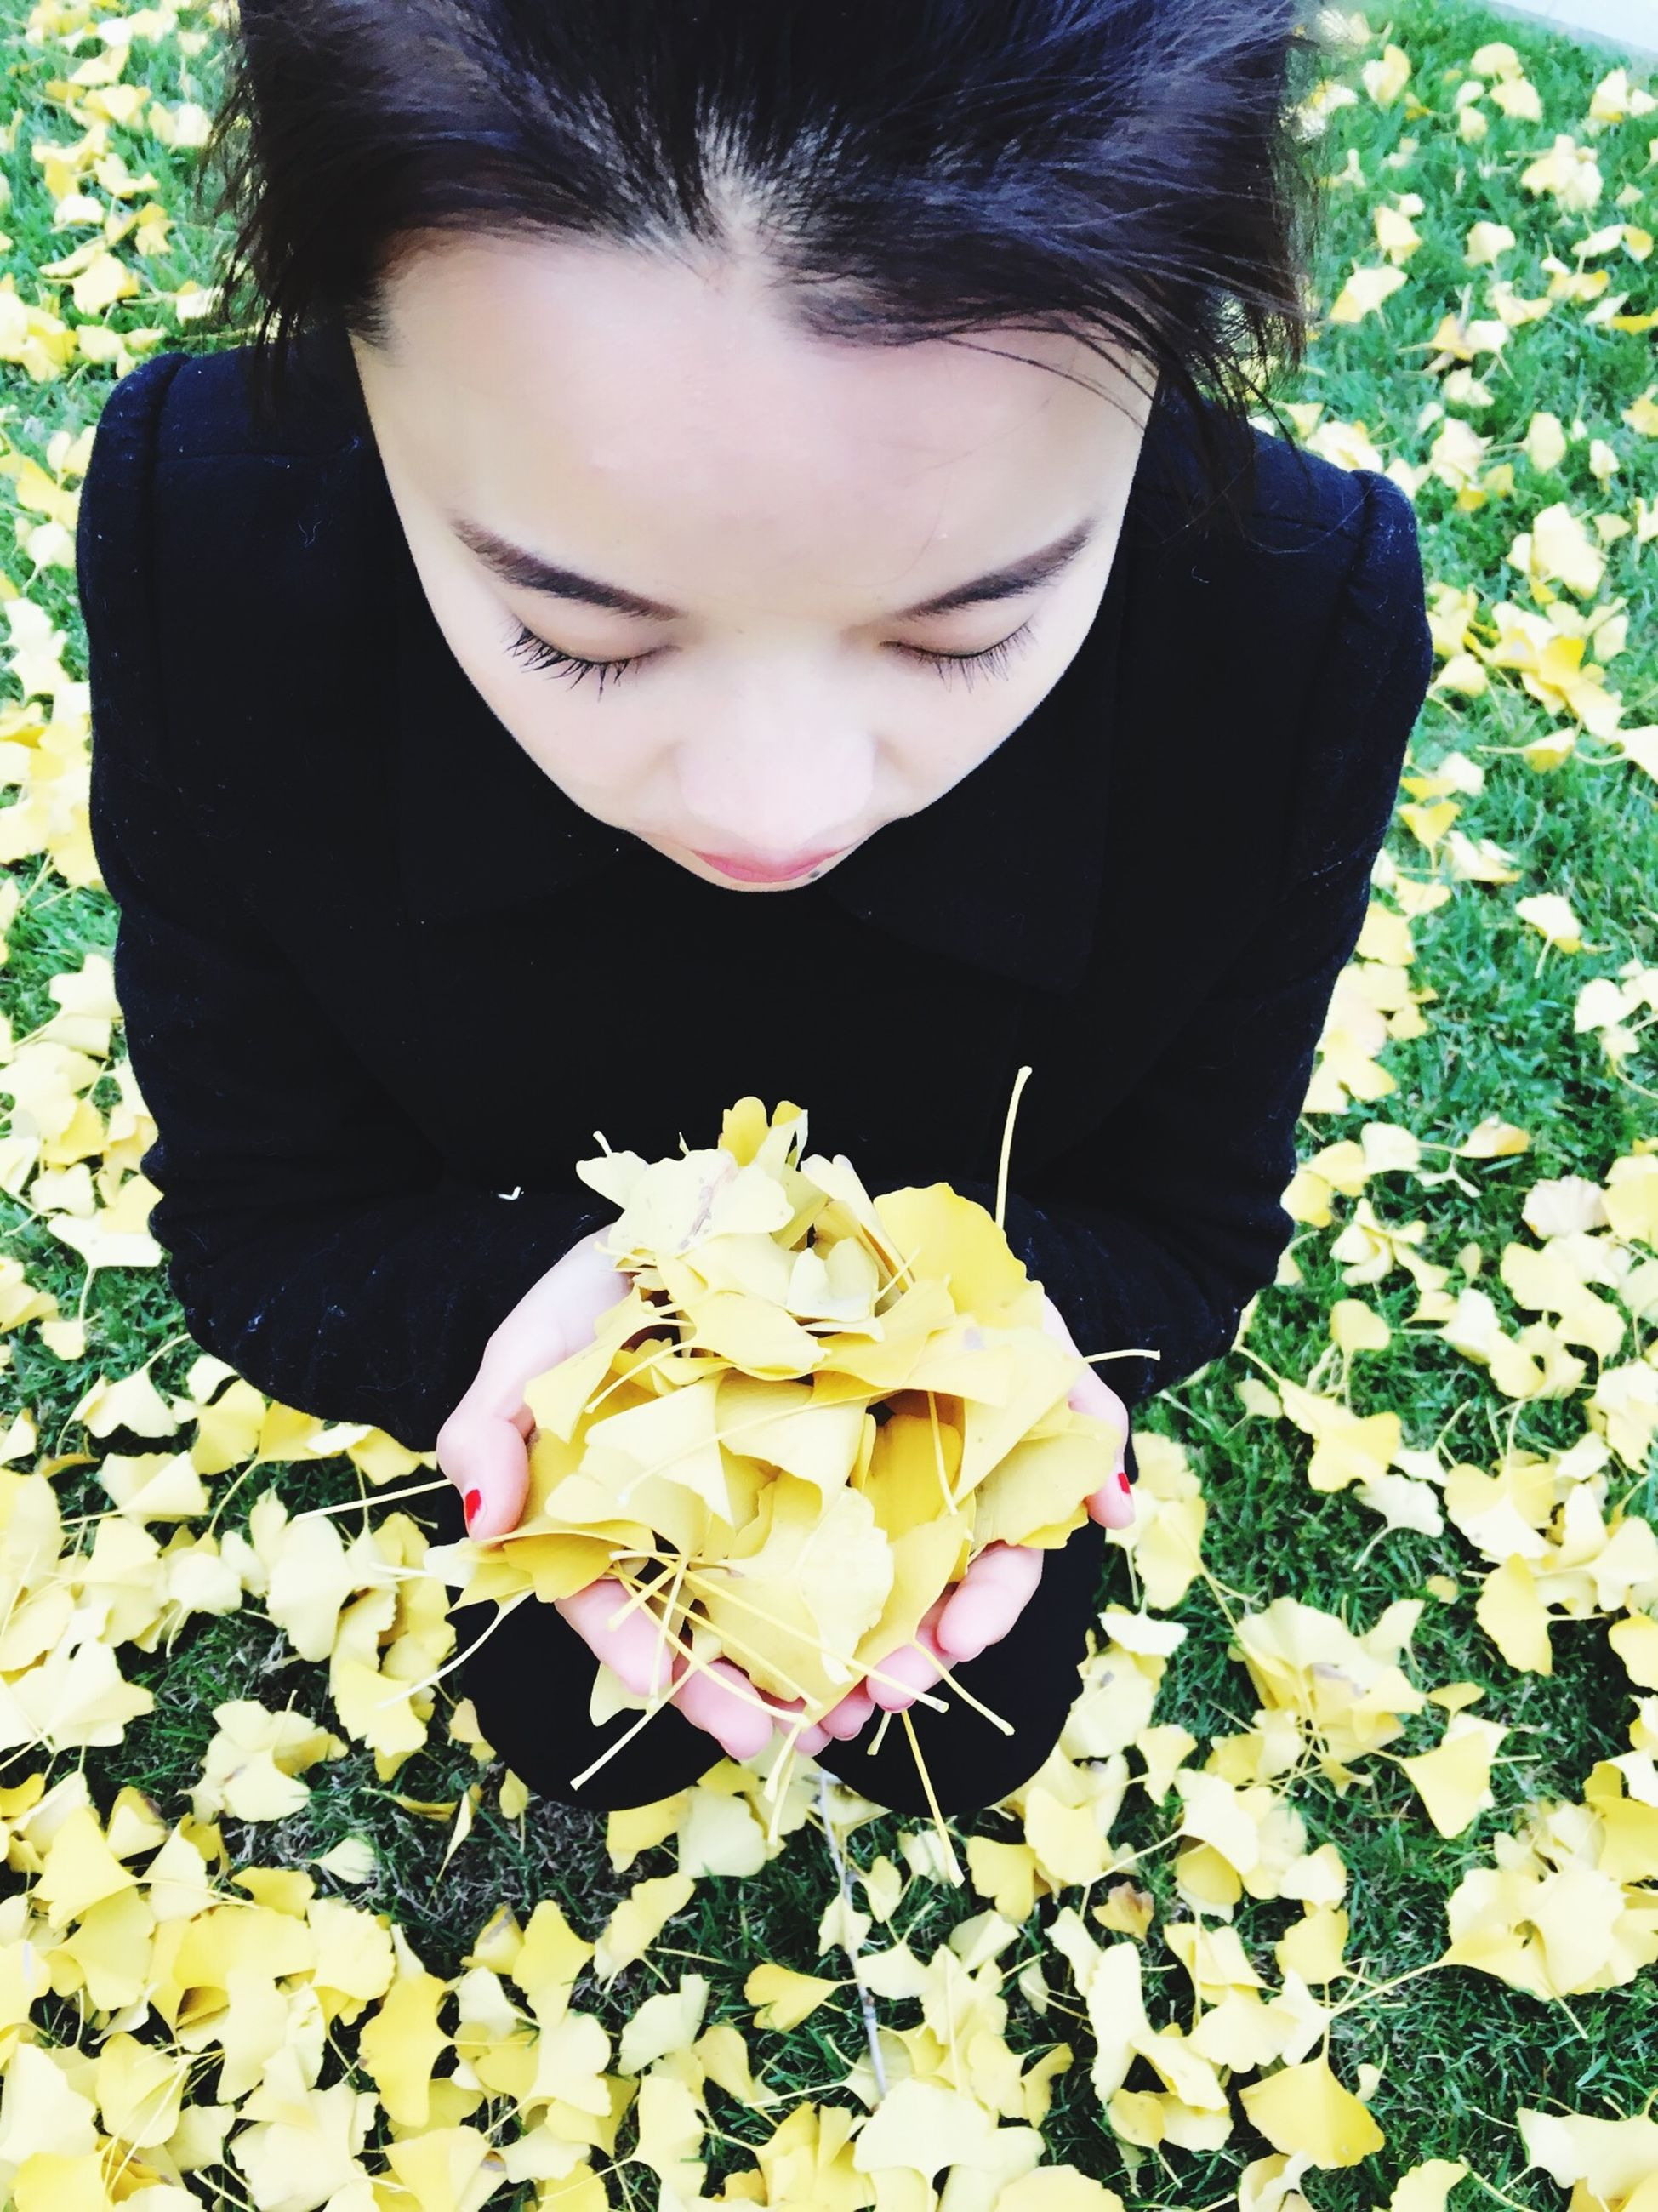 flower, fragility, lifestyles, freshness, person, leaf, casual clothing, petal, flower head, holding, leisure activity, yellow, front view, high angle view, nature, close-up, elementary age, day